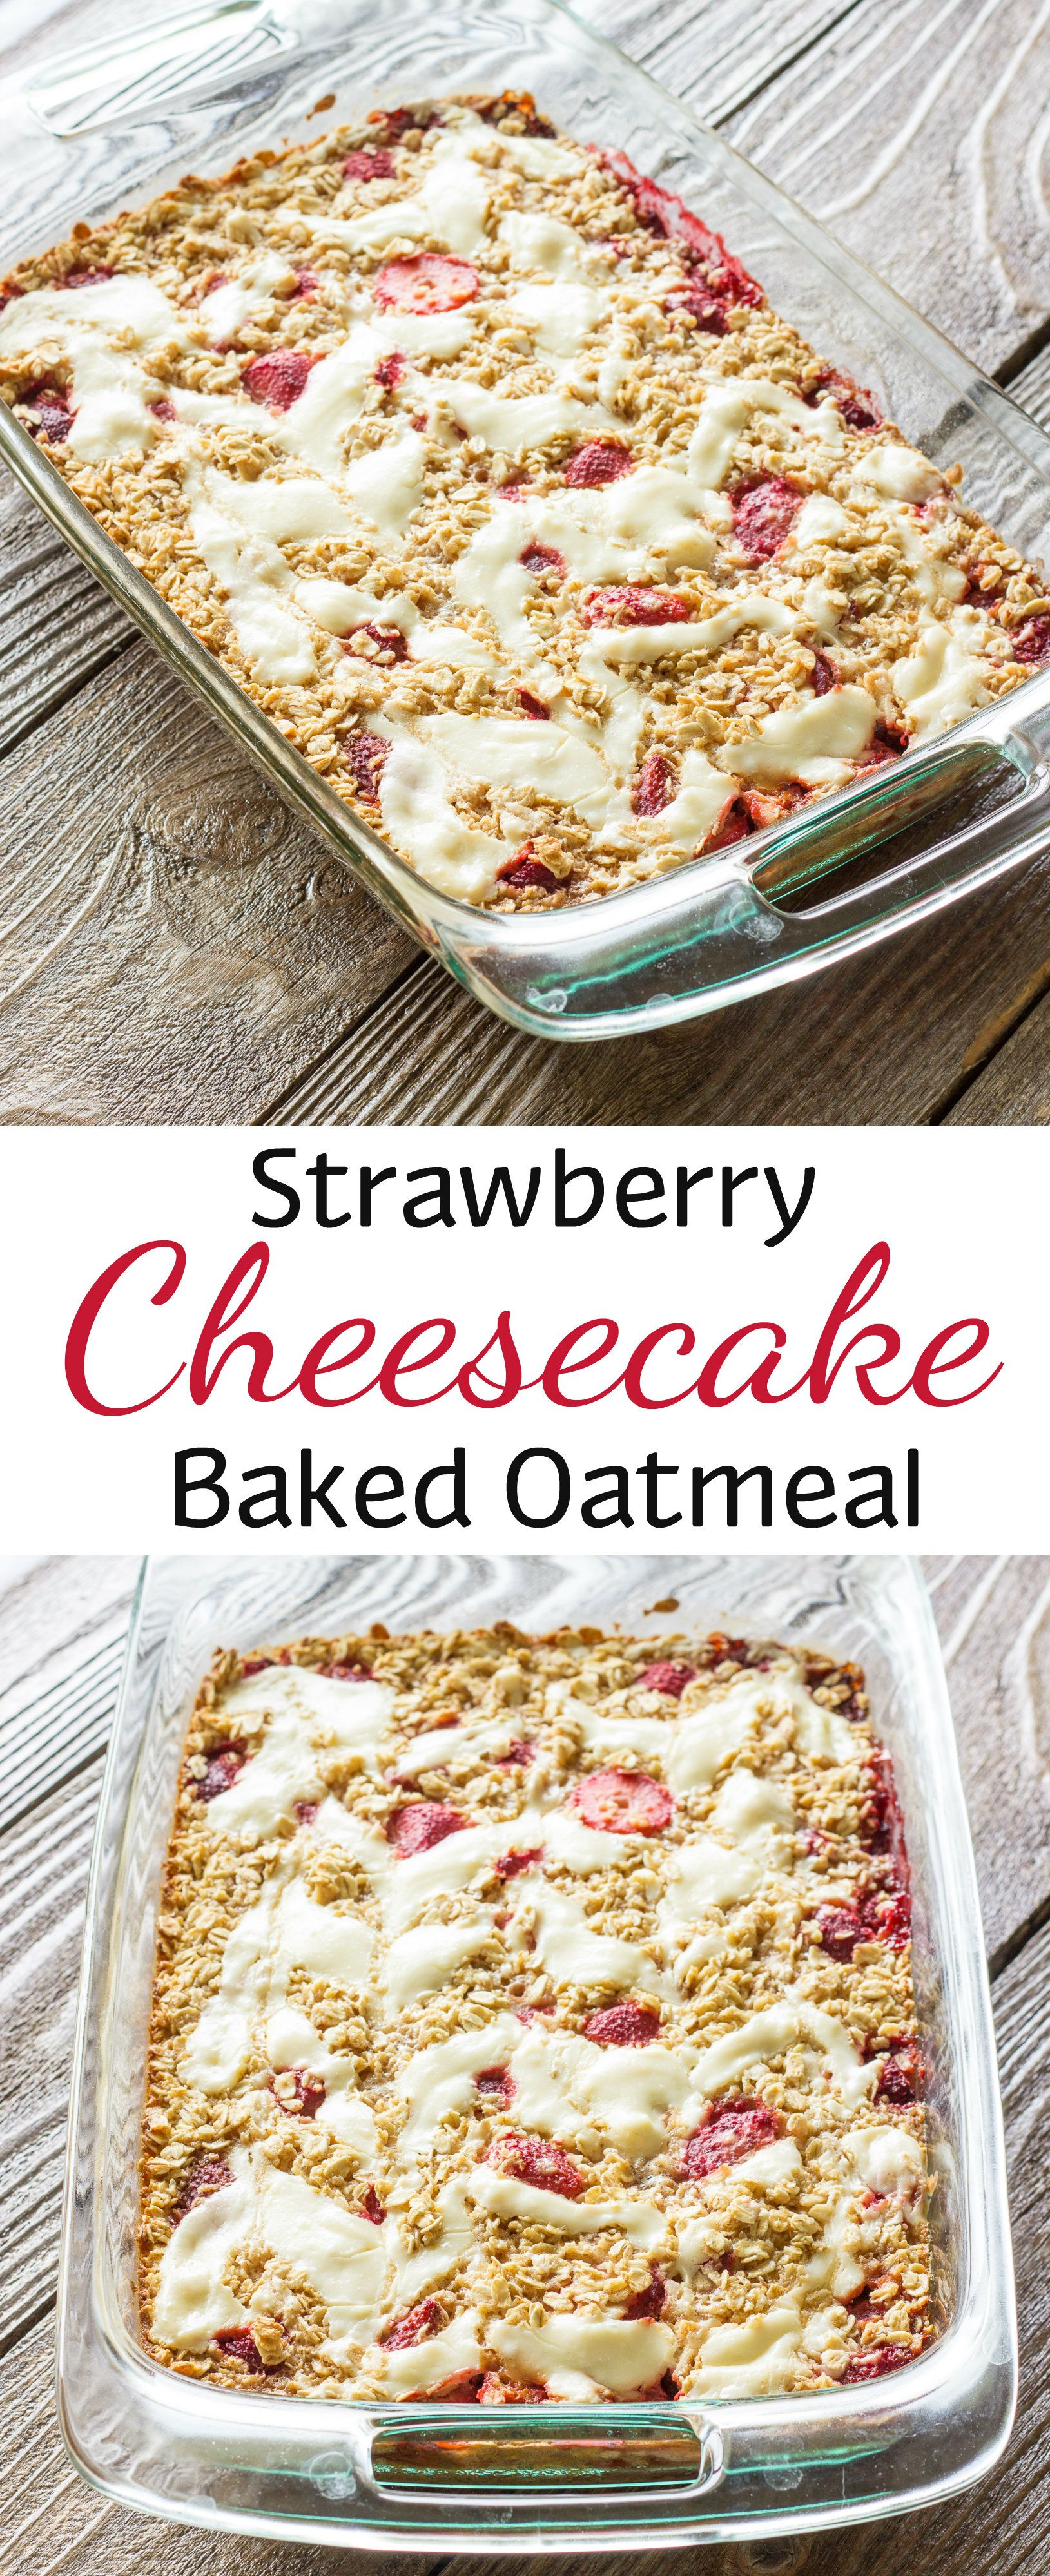 Strawberry Cheesecake Baked Oatmeal - Baked oatmeal loaded with strawberries and a cheesecake swirl.